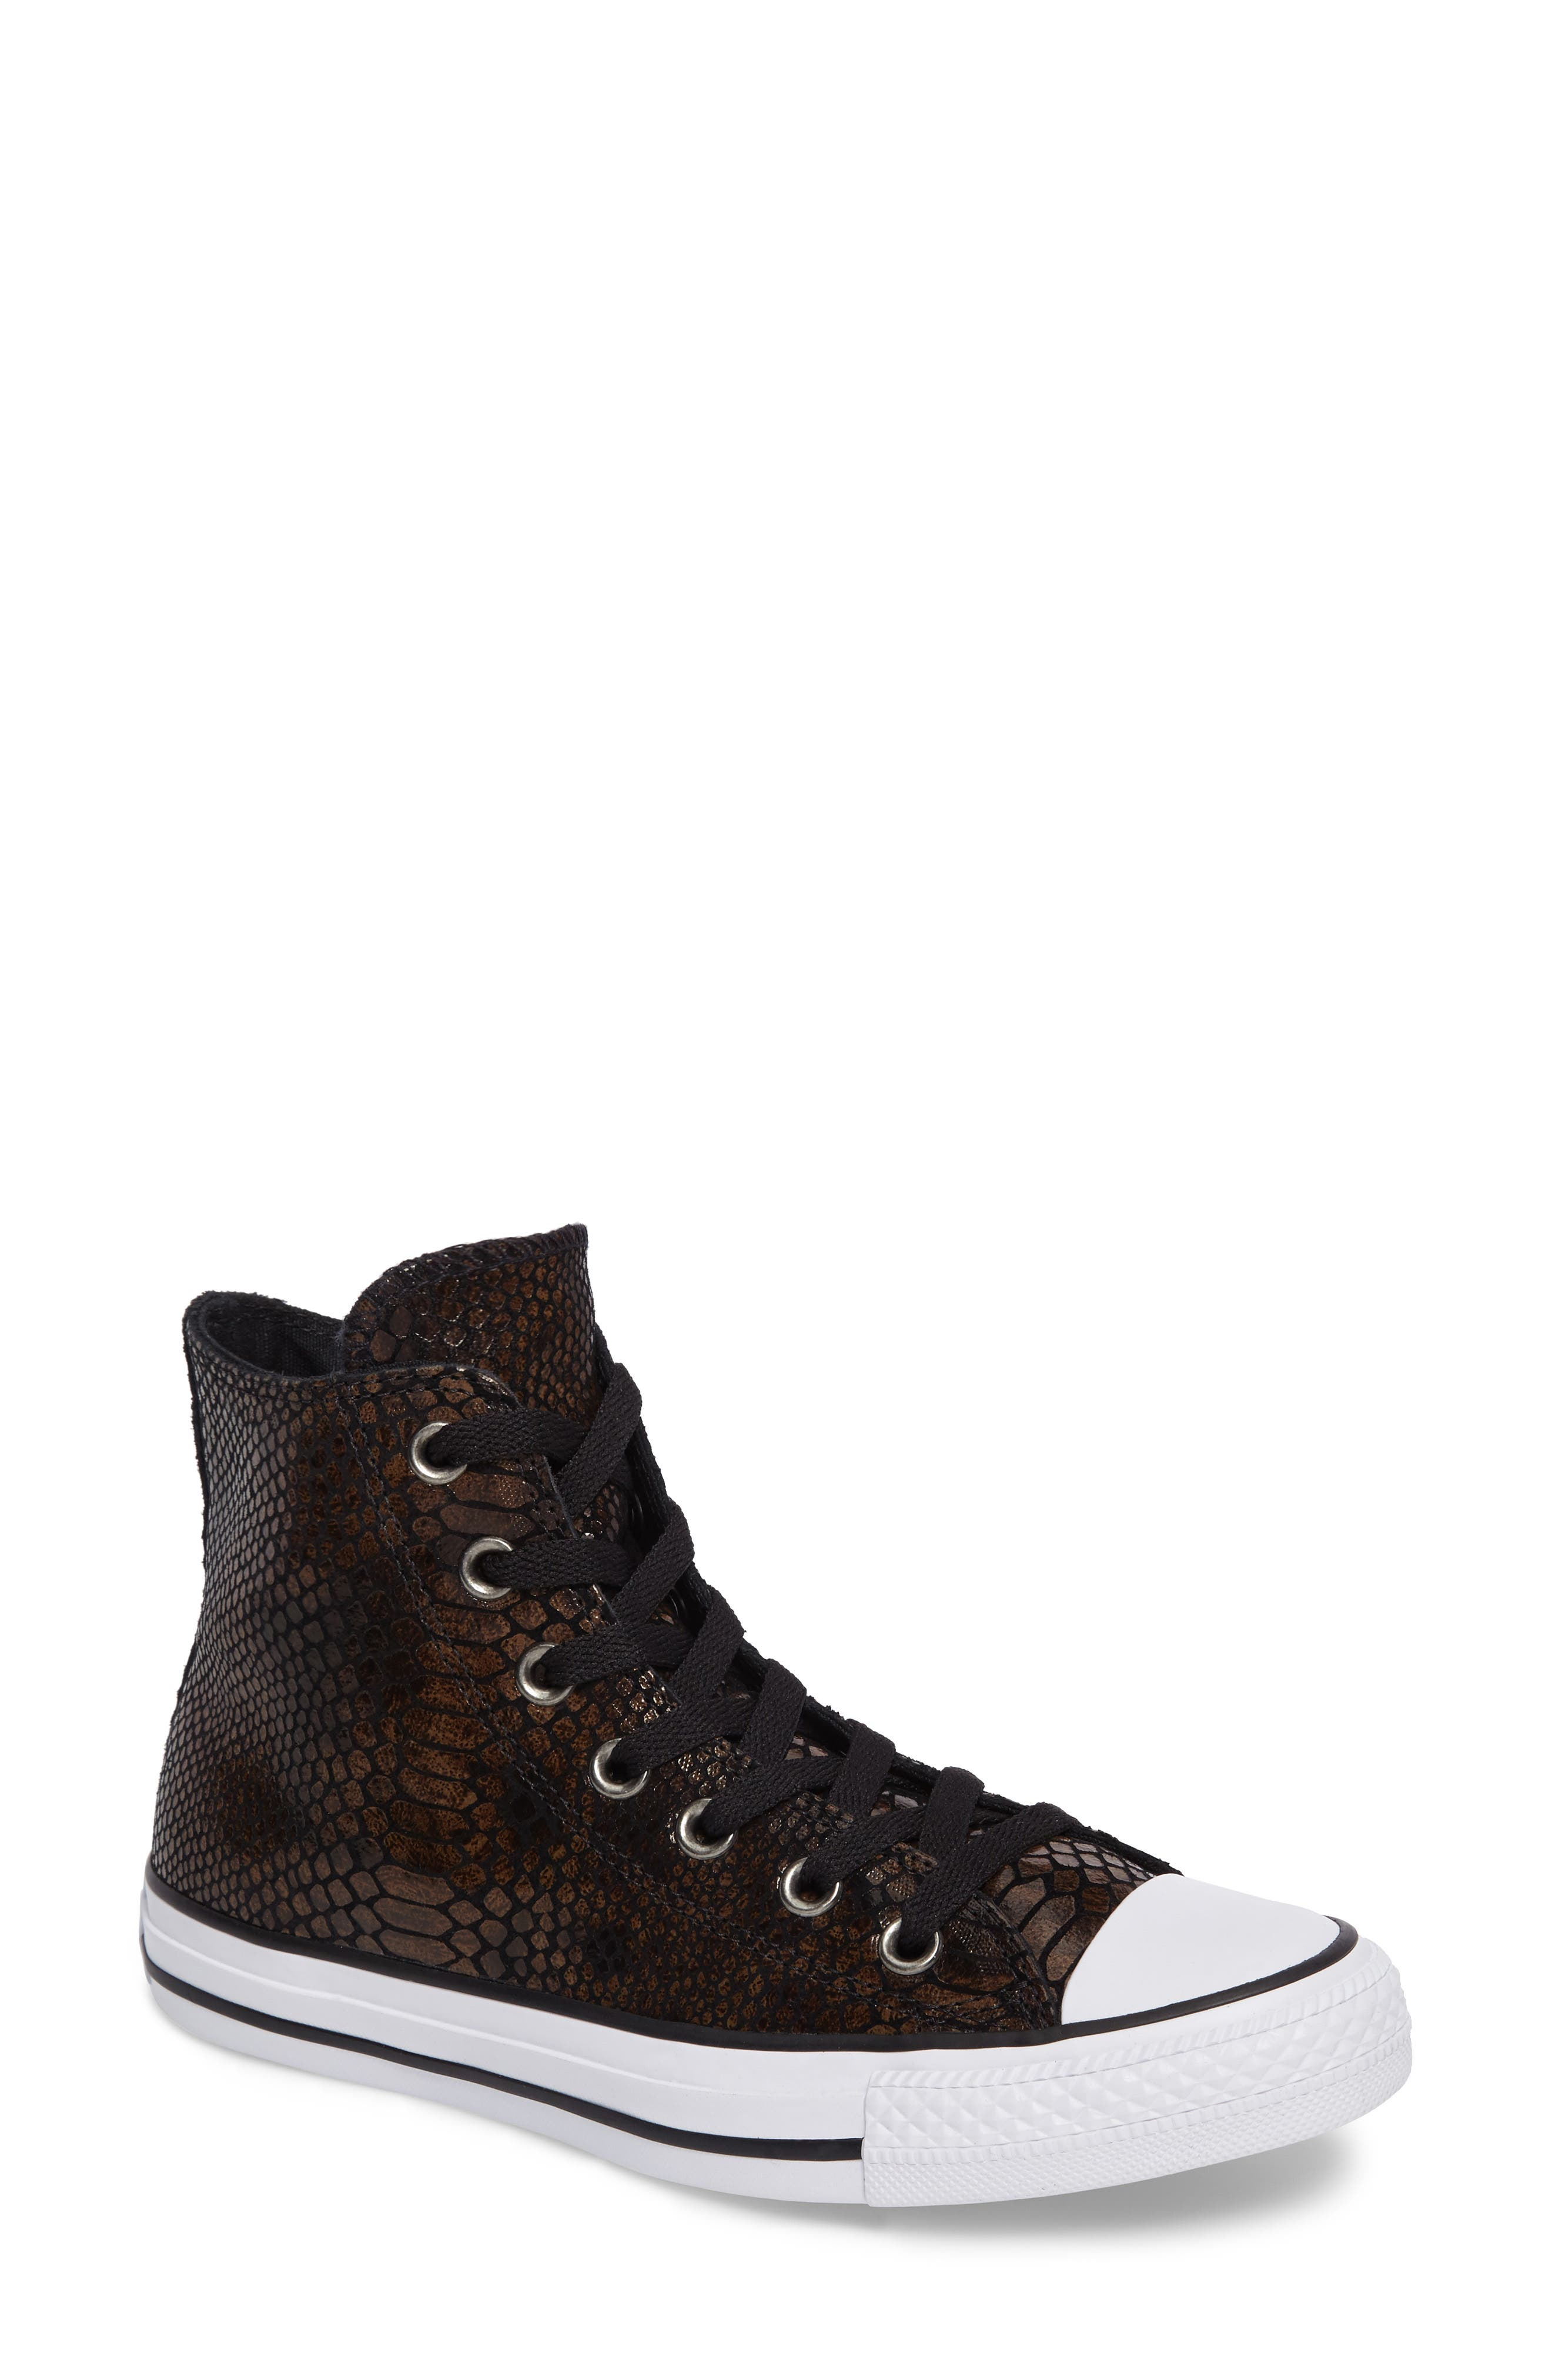 Main Image - Converse Chuck Taylor® All Star® Snake Embossed High Top Sneaker (Women)